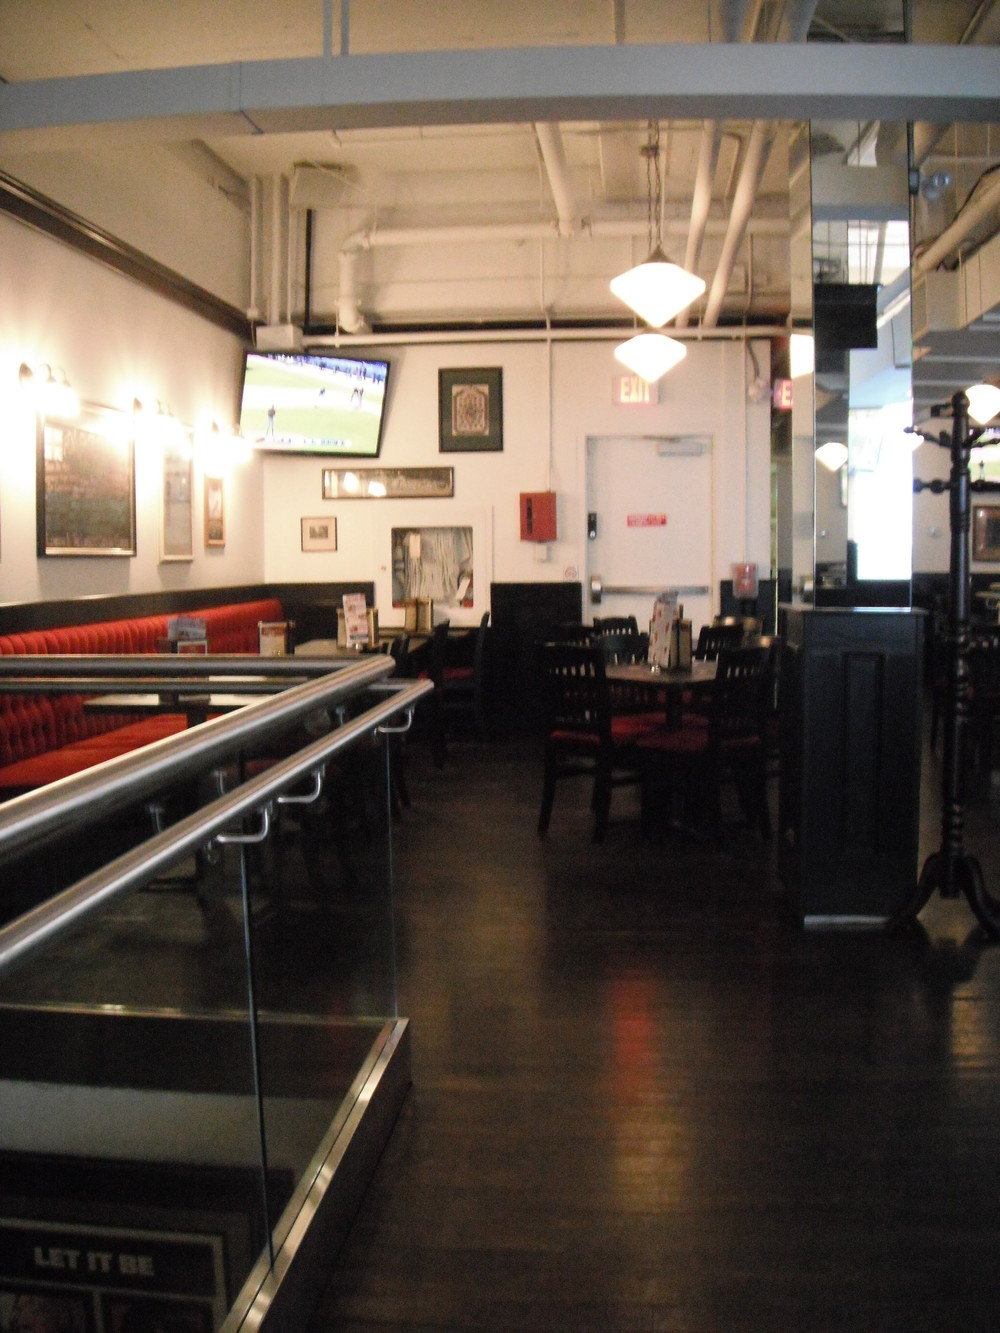 Image of accessible space inside restaurant.